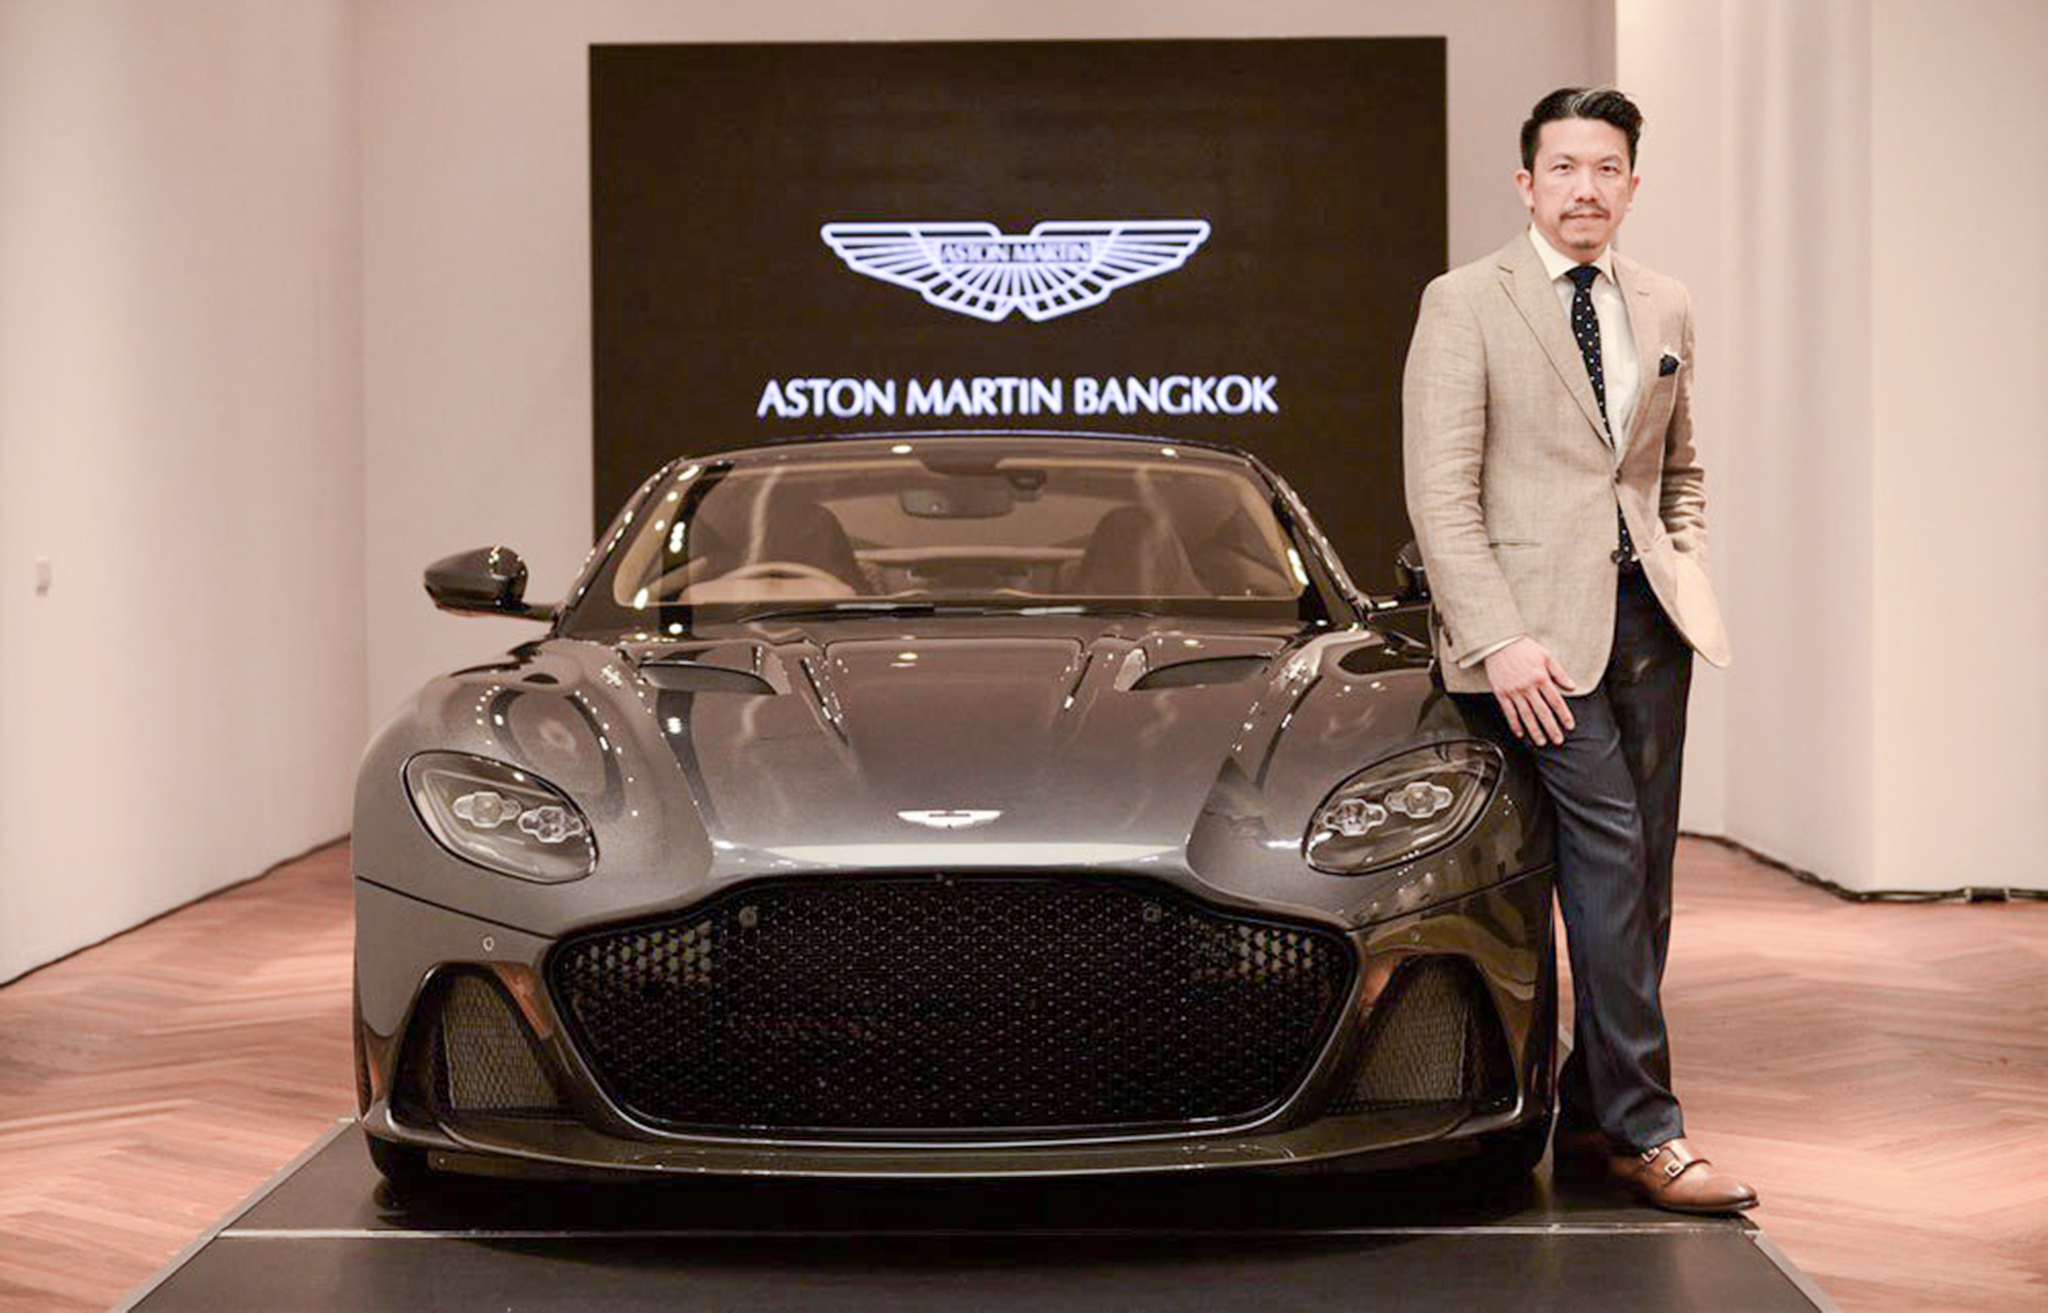 aston-martin-dbs-superleggera-launches-in-thailand-a02.jpg